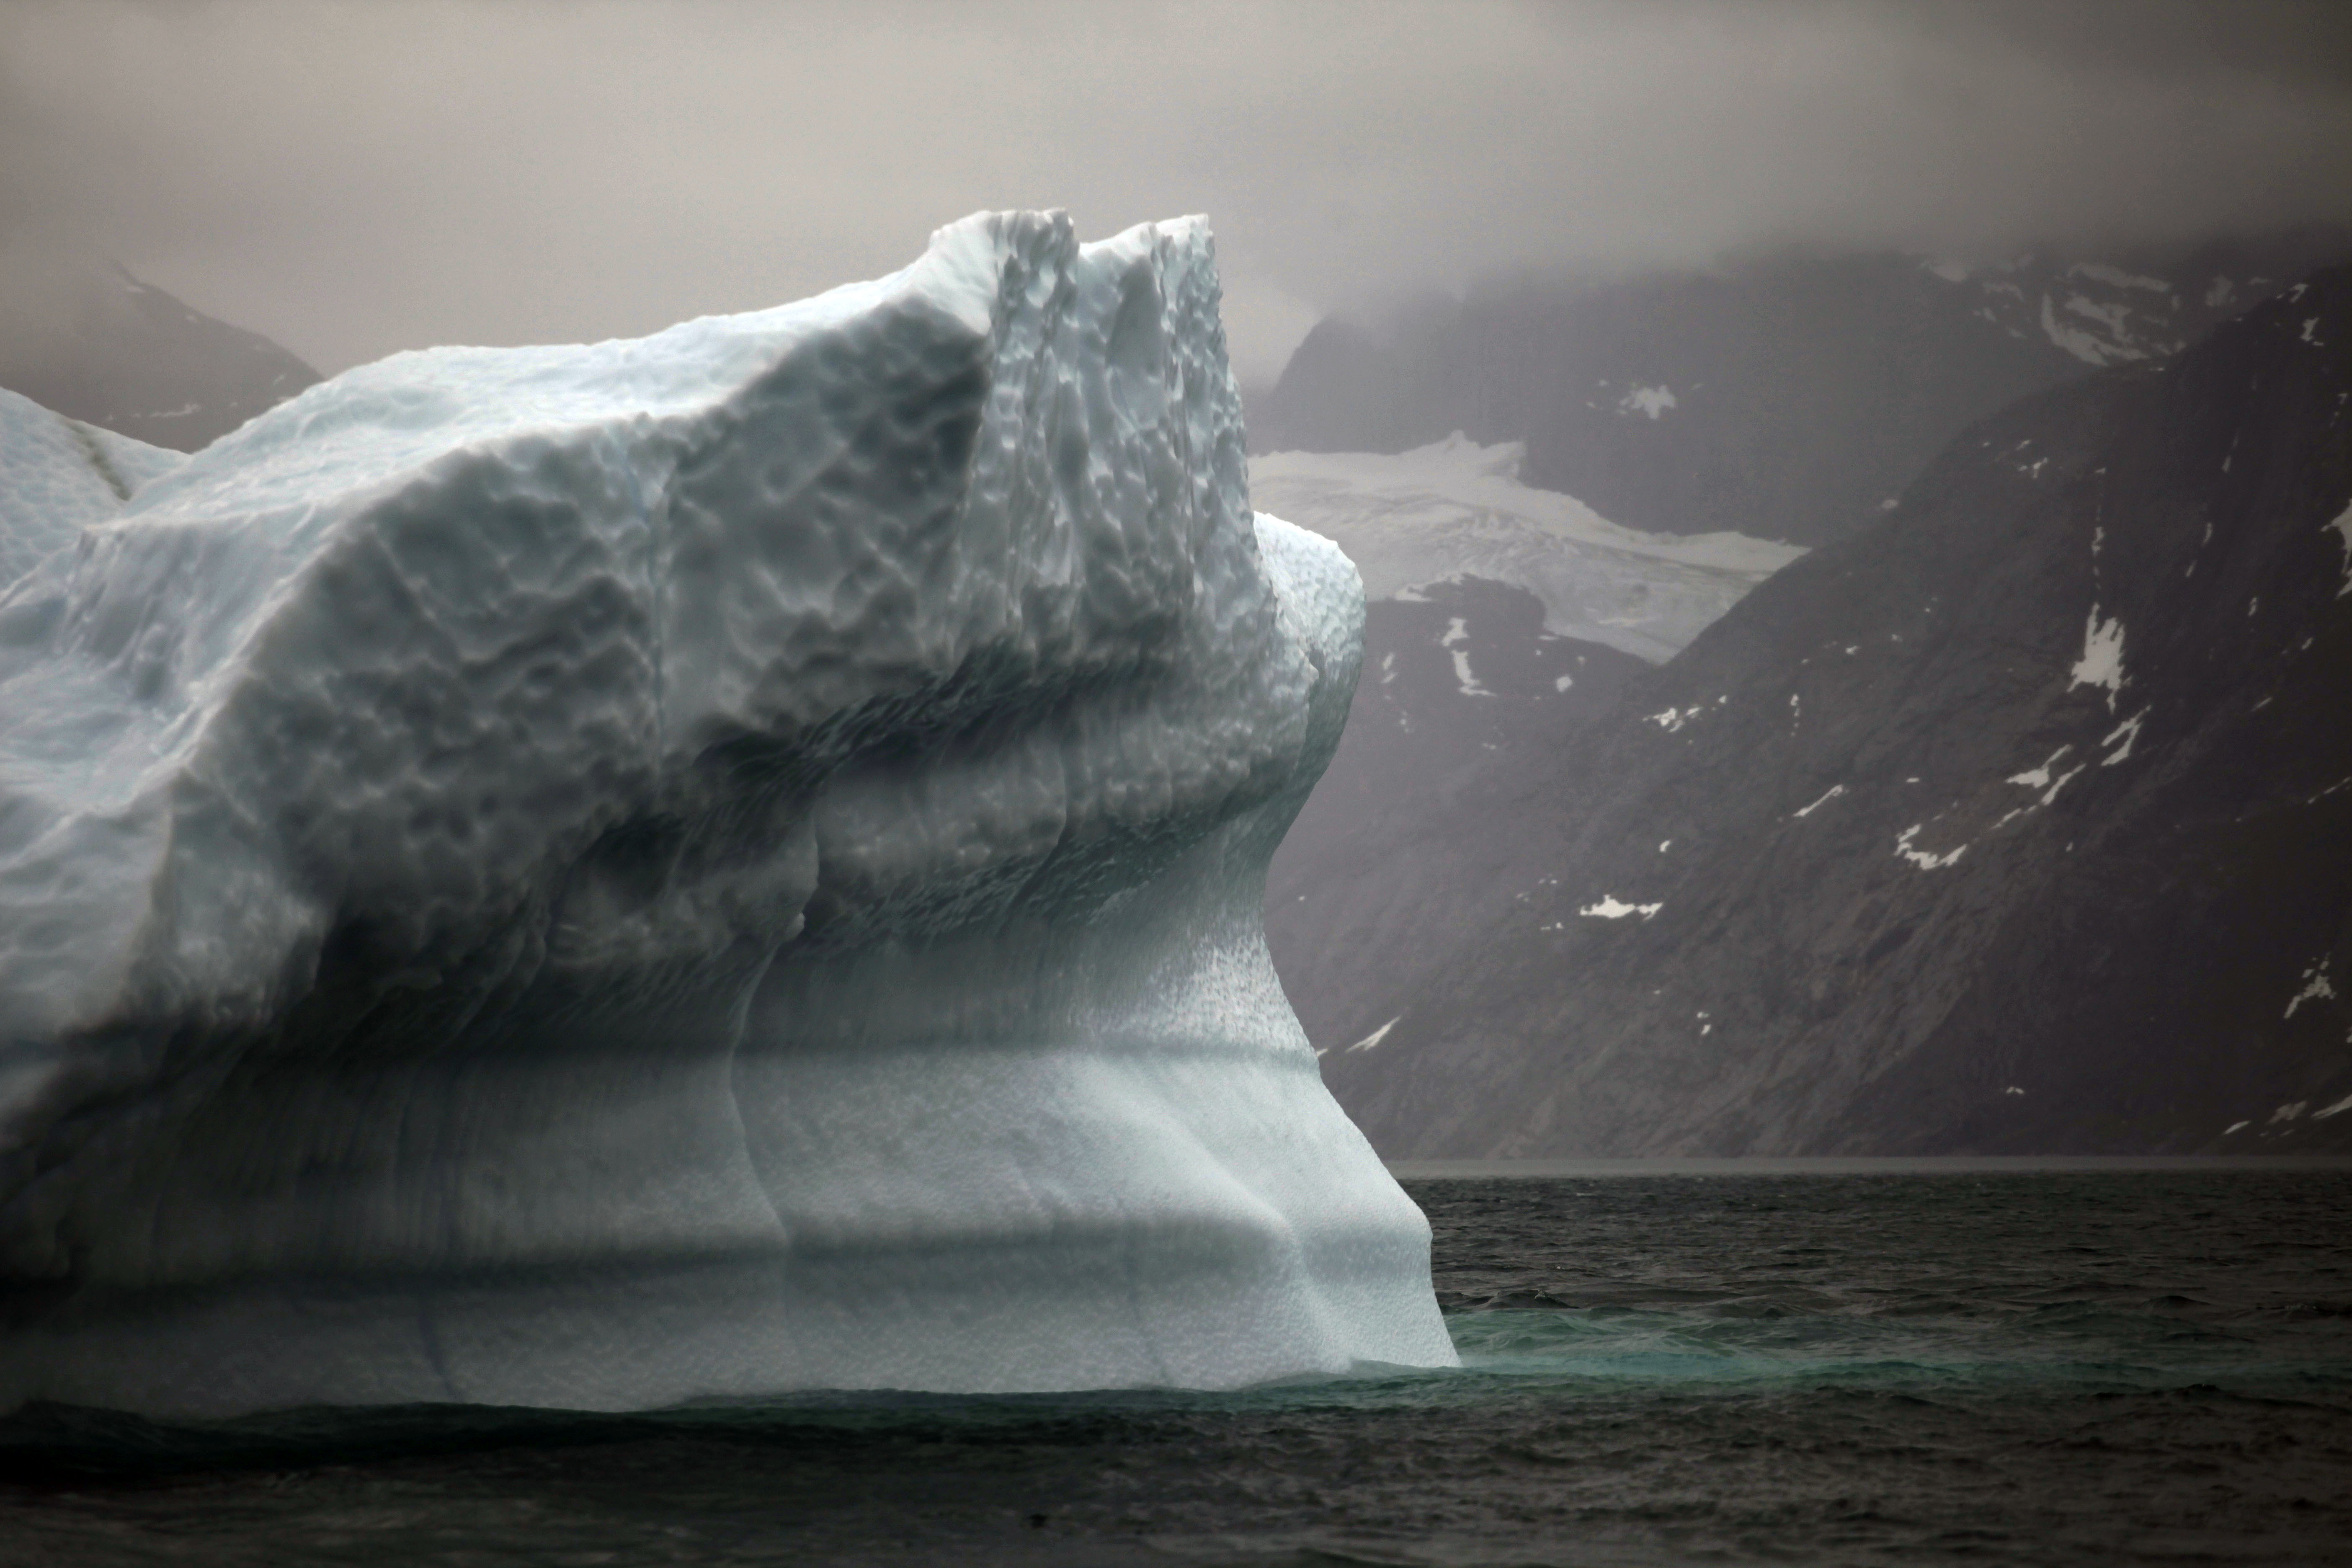 FILE- In this July 26, 2011 photo, a melting iceberg floats along a fjord leading away from the edge of the Greenland ice sheet near Nuuk, Greenland. The COP 24 UN Climate Change Conference is taking place in Katowice, Poland. Negotiators from around the world are meeting for talks on curbing climate change. (AP Photo/Brennan Linsley, File)